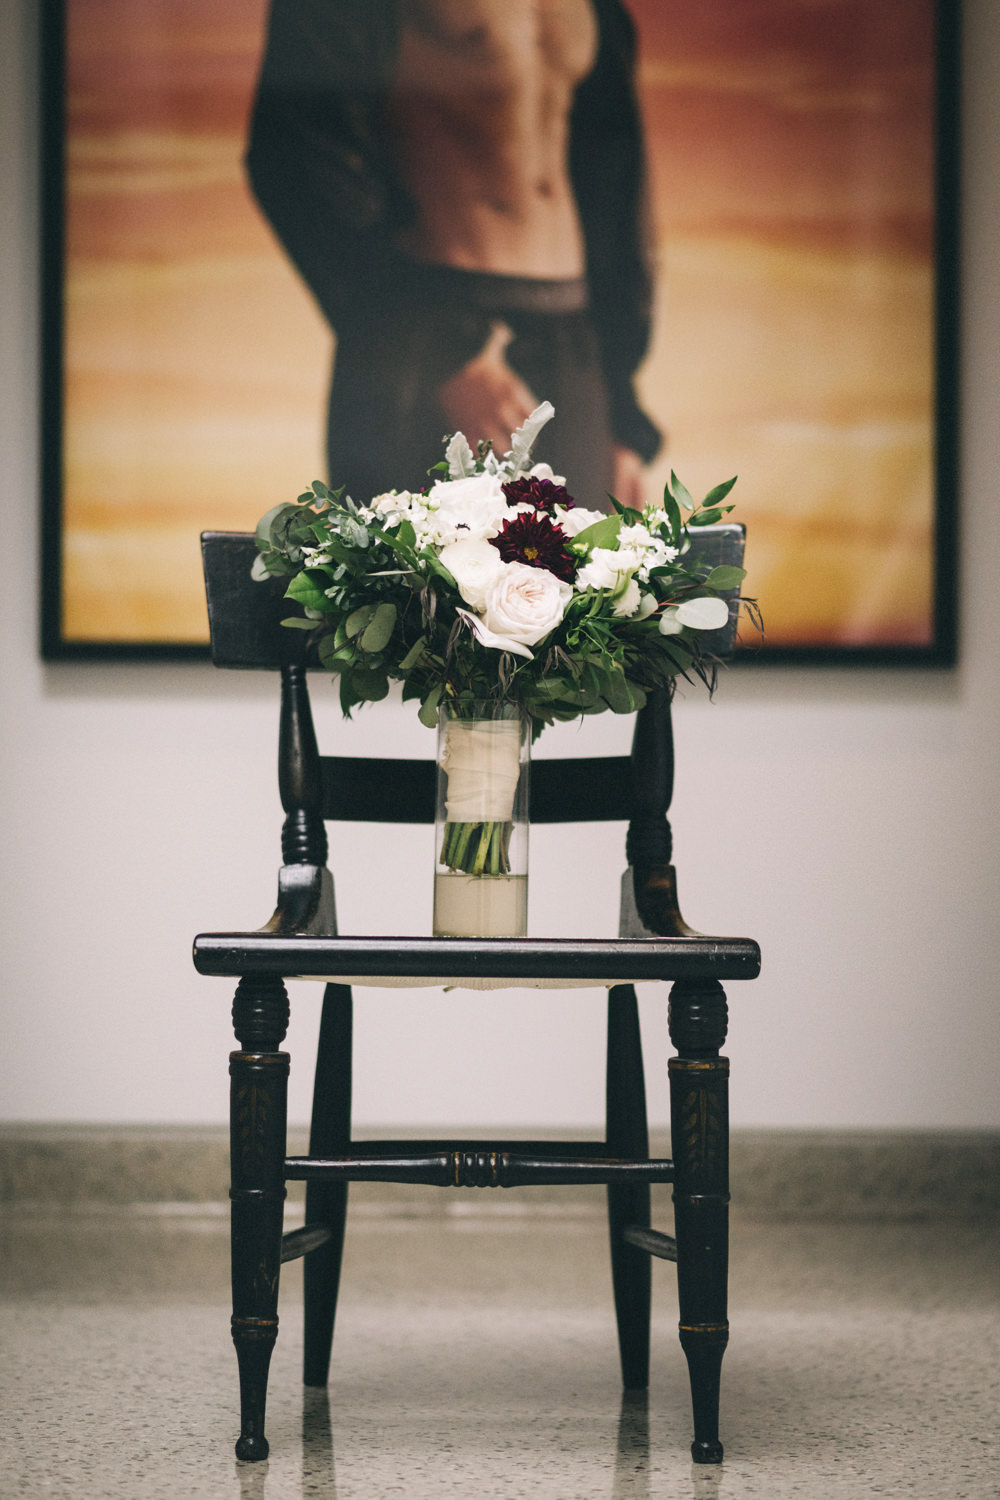 Jessica-Arno-Intimate-21c-Museum-Louisville-Kentucky-Wedding-By-Sarah-Katherine-Davis-Photography-74edit.jpg